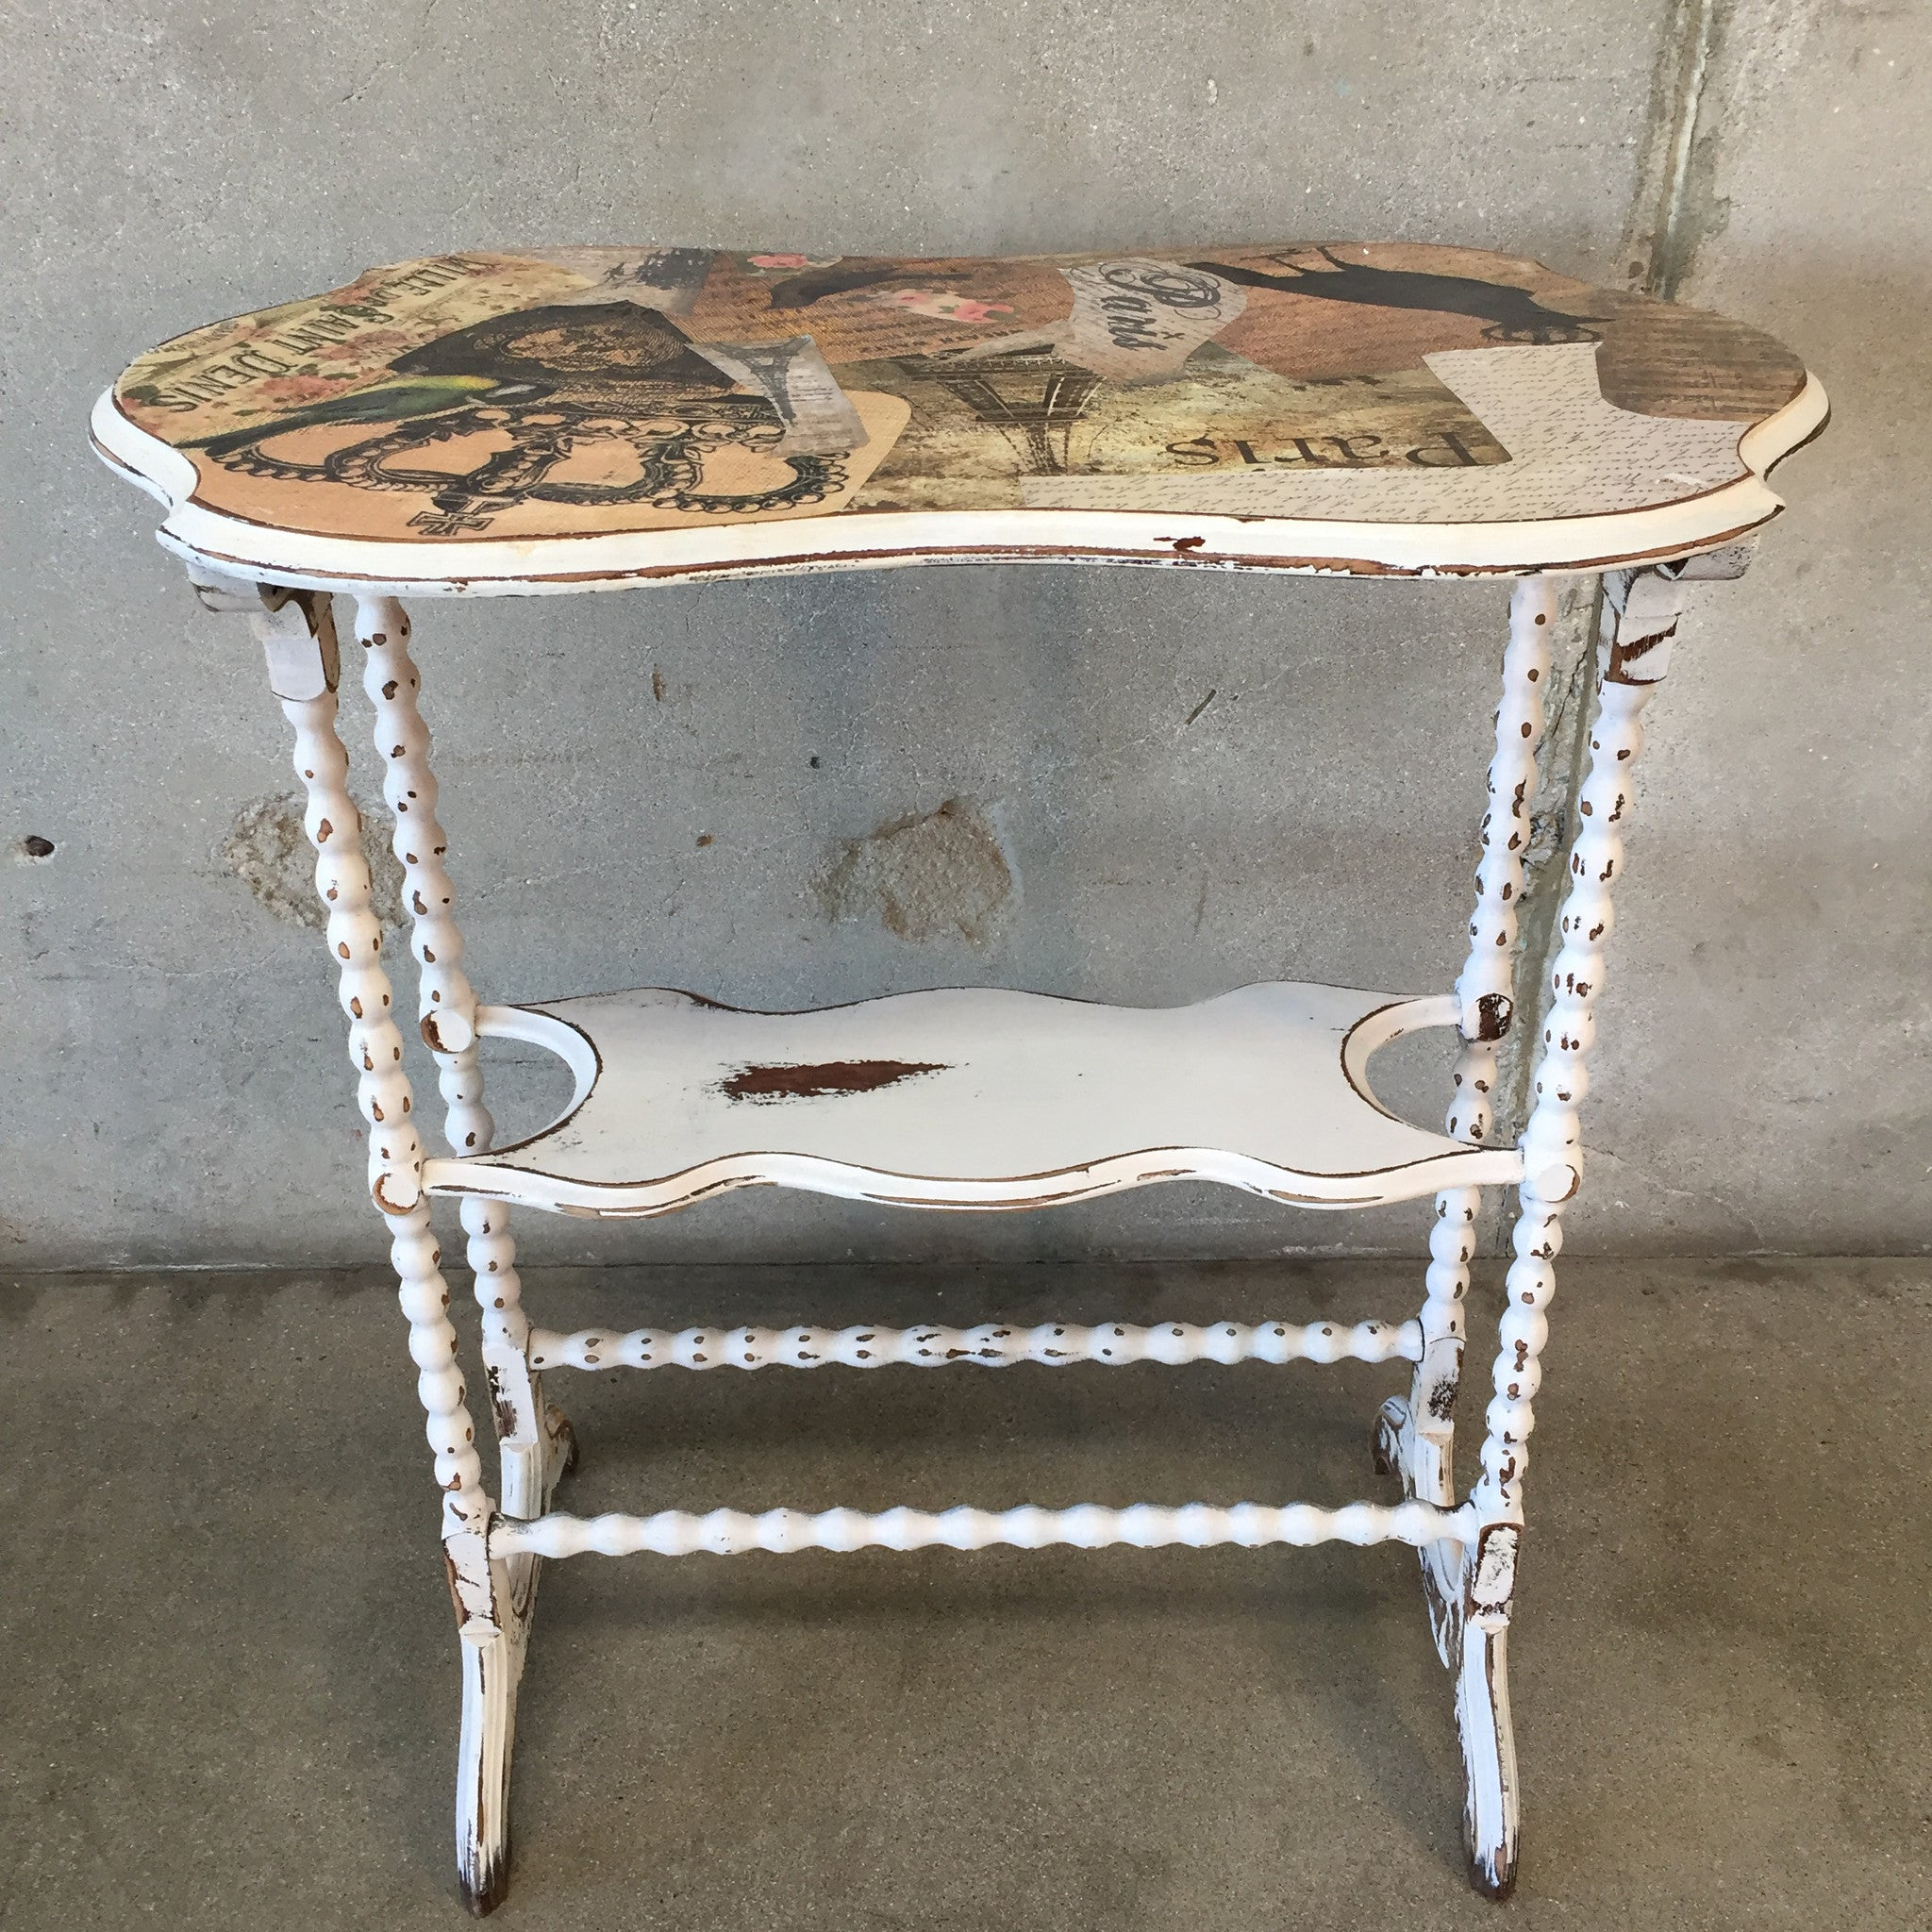 Vintage Paris Decoupage Table – UrbanAmericana